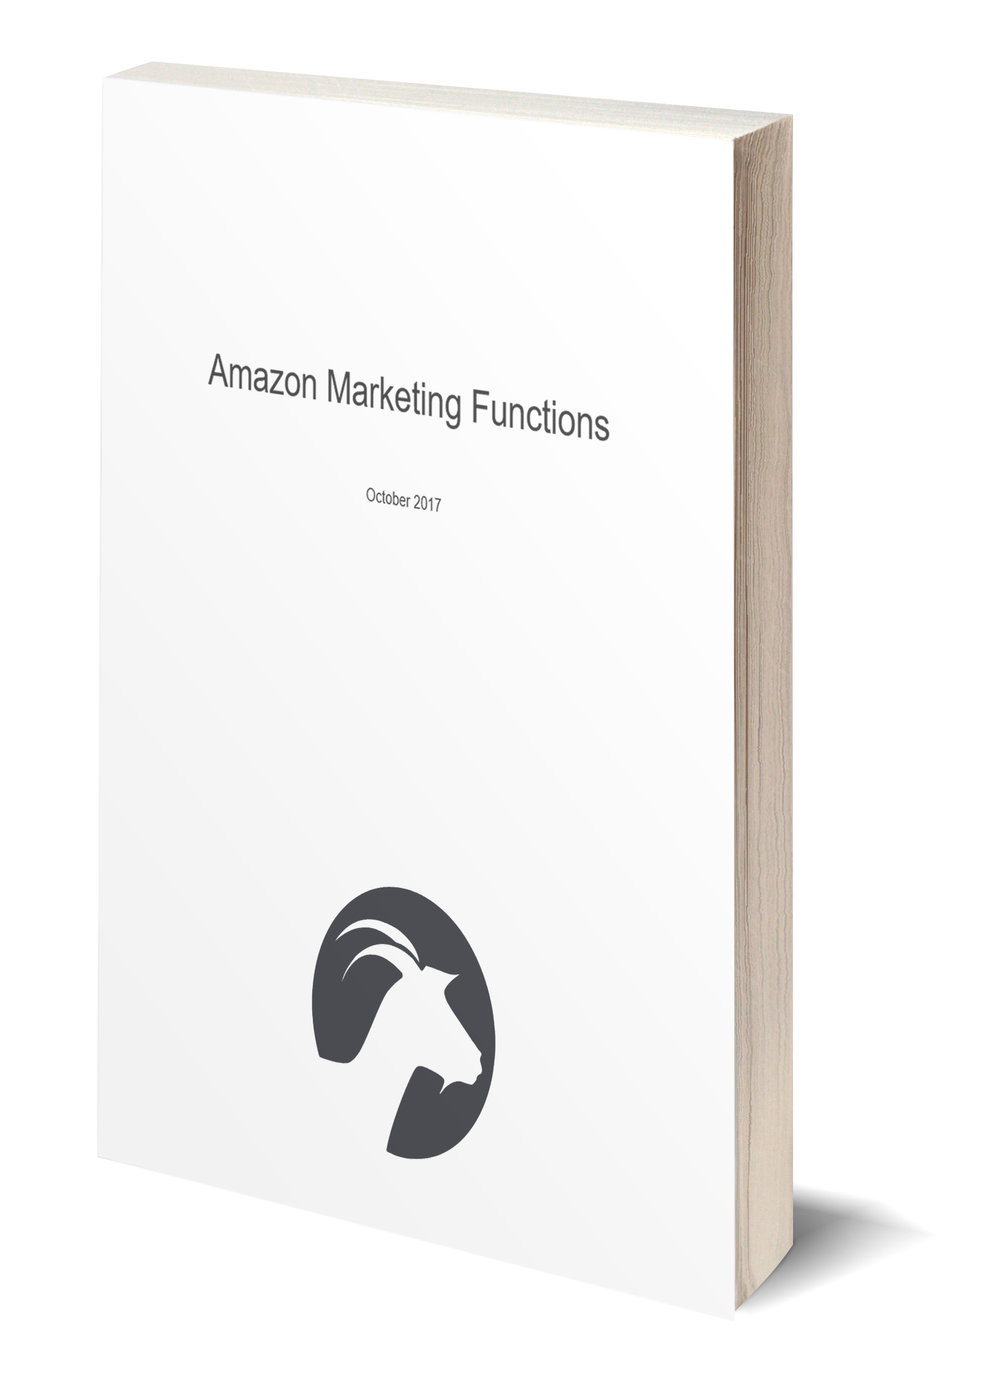 AmazonMarketingFunctions.jpg